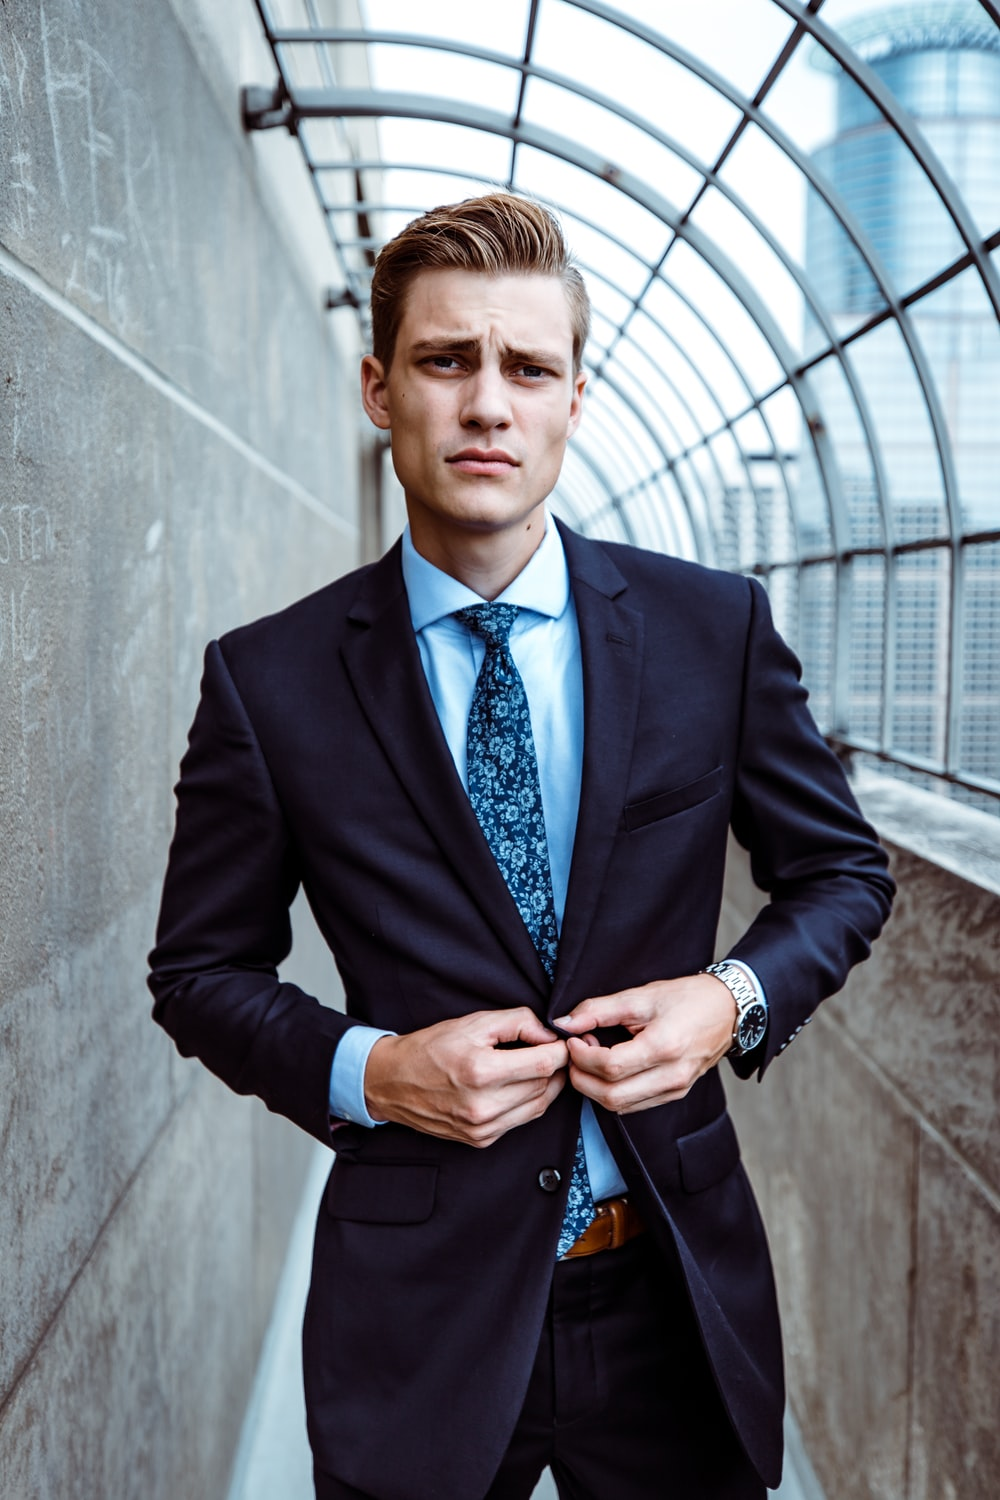 20 Suit Pictures Download Free Images On Unsplash